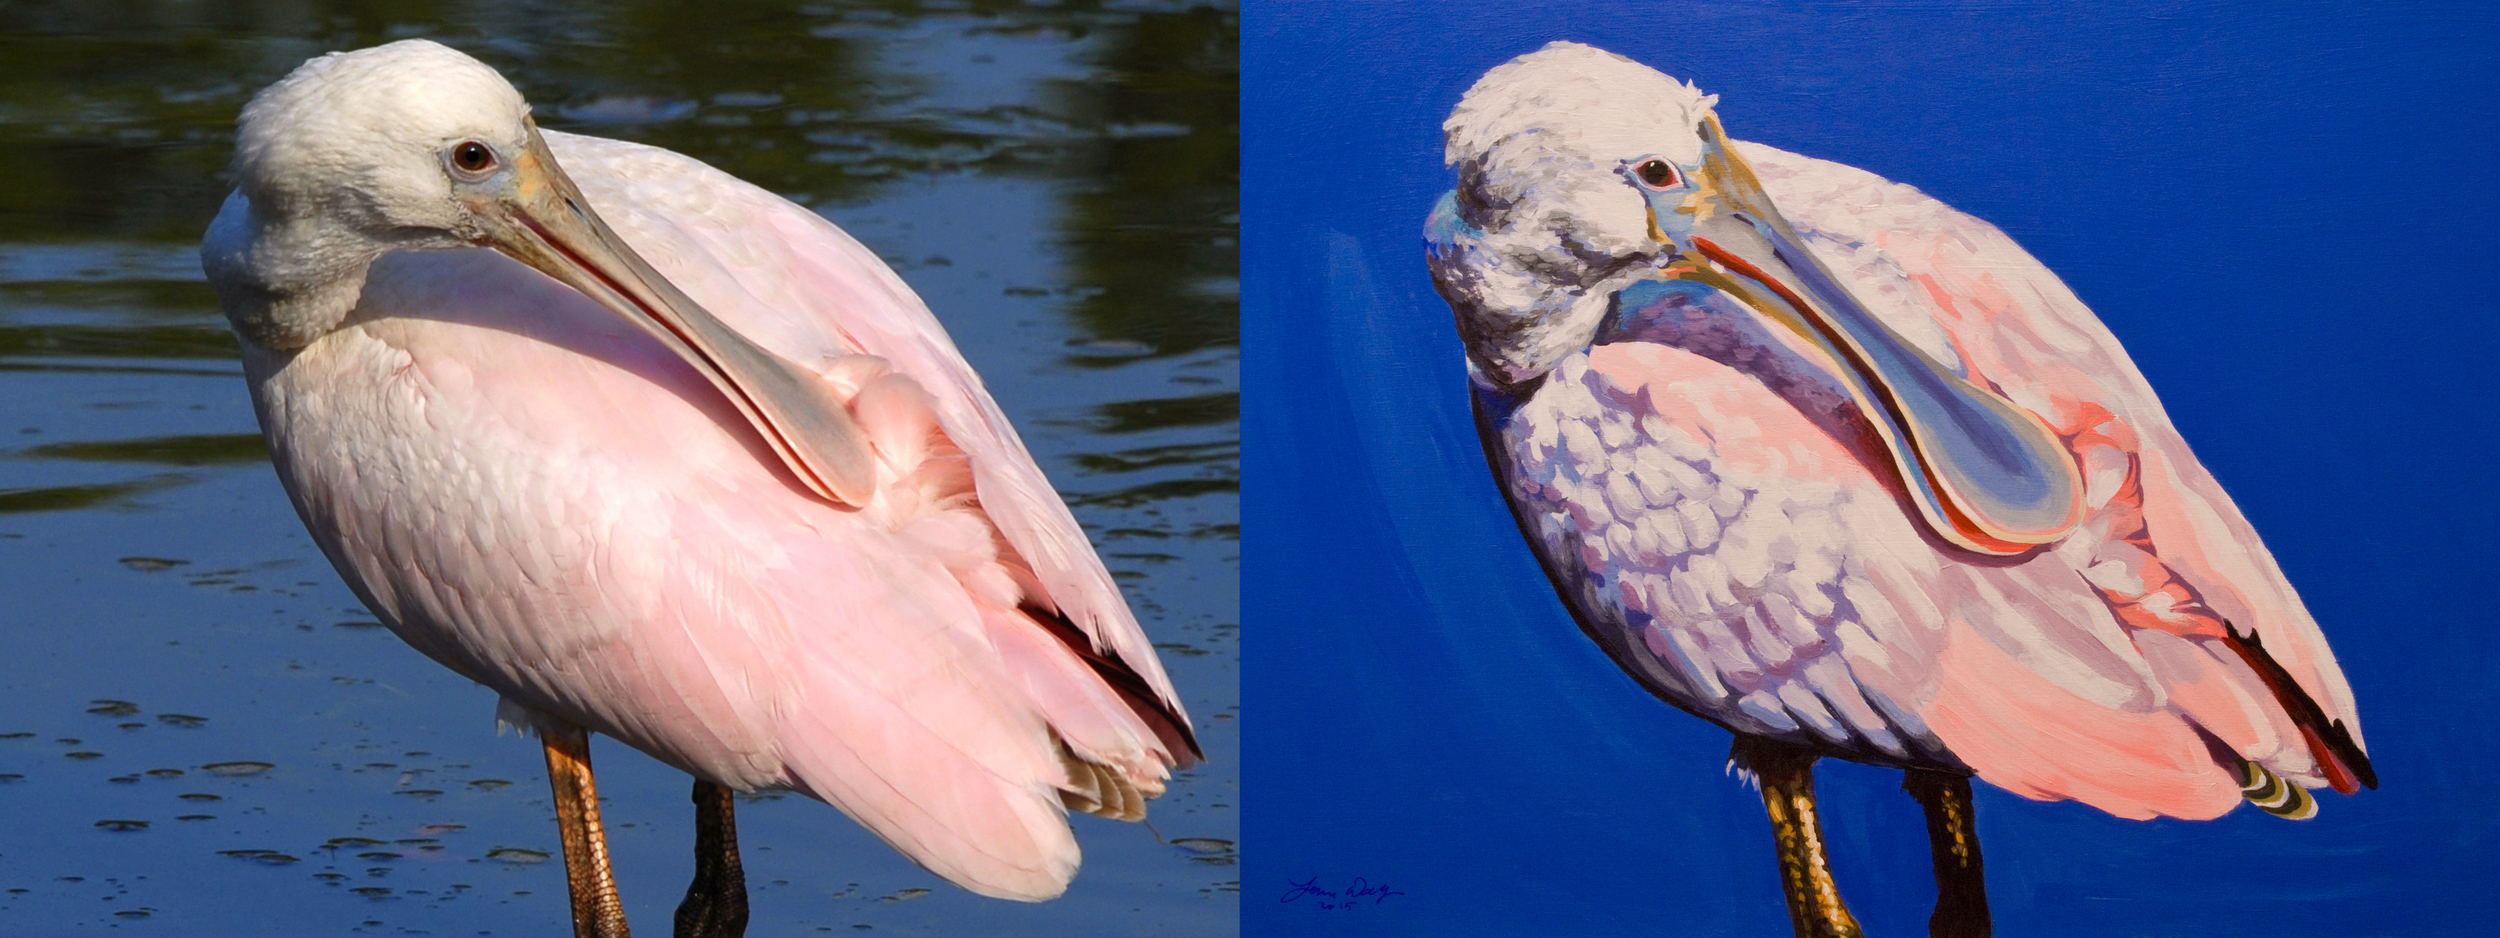 spoonbill preening before and after.jpg